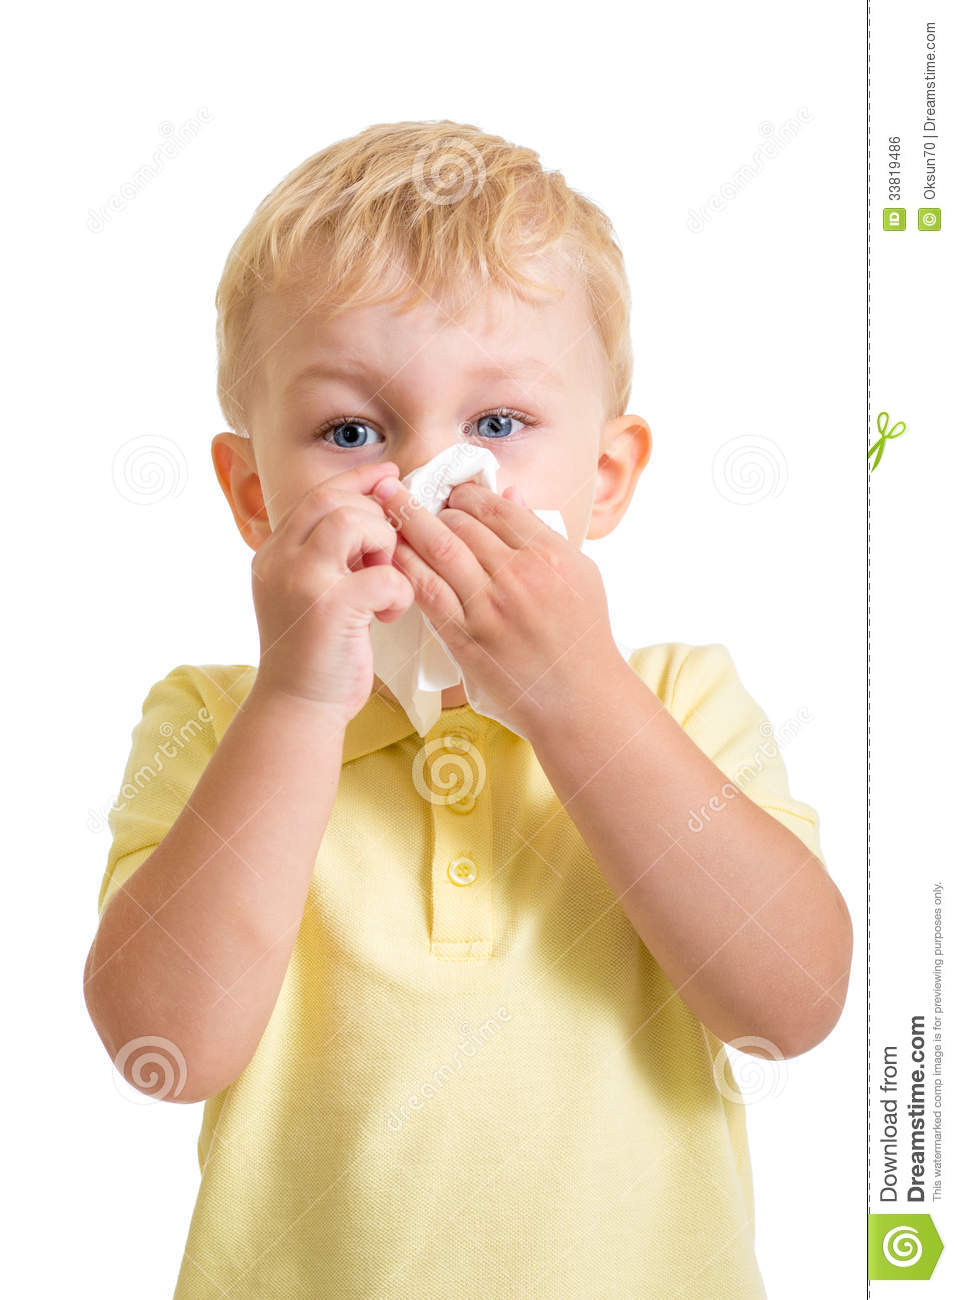 Kid cleaning nose with tissue isolated